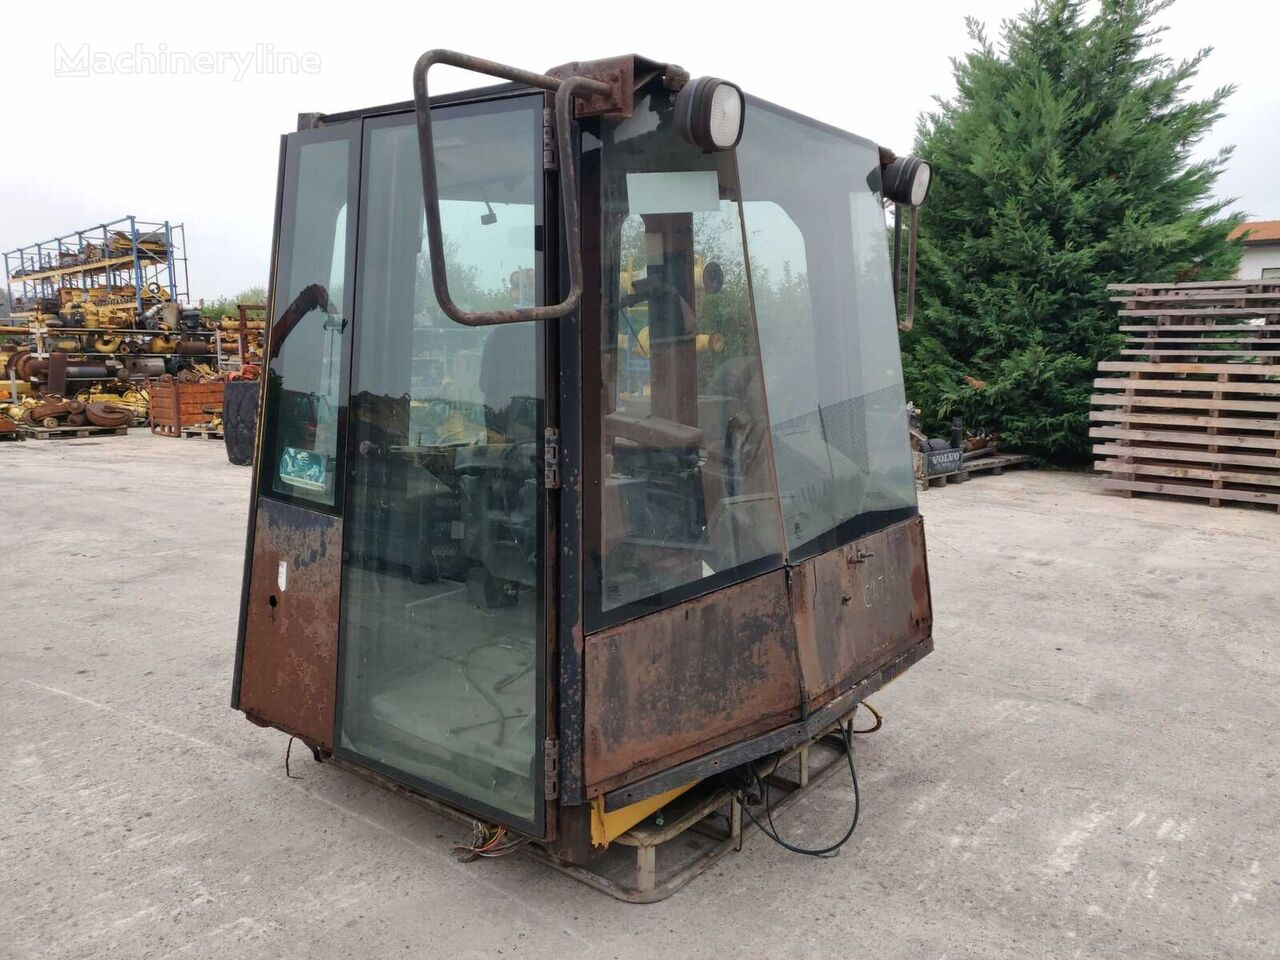 Complete cab in good working condition (1414643) cabin for Caterpillar 988G 2TW00555 wheel loader